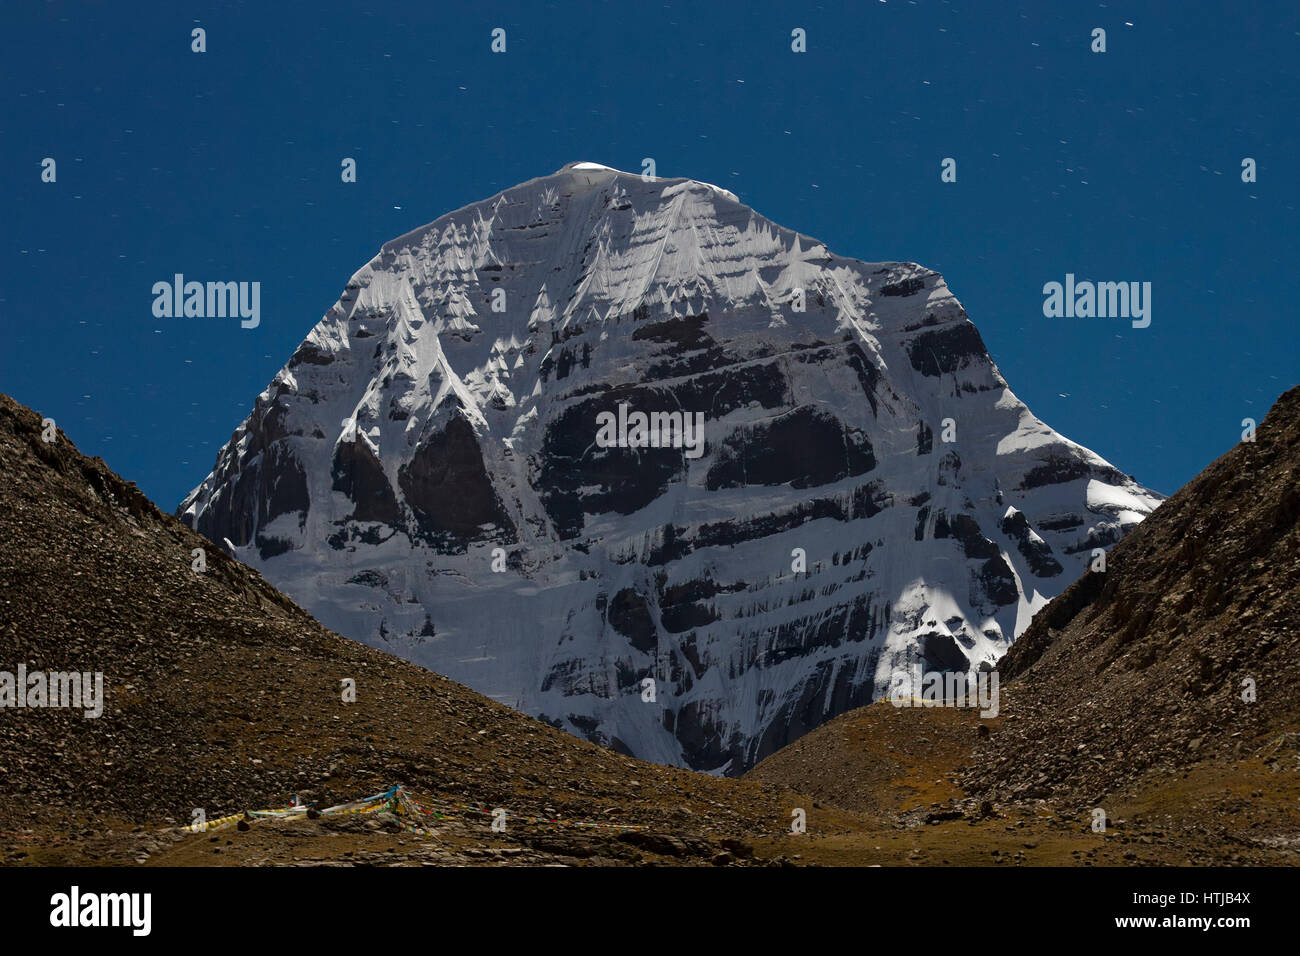 The North Face Of Mount Kailash In Moon Light A View From Dirapuk